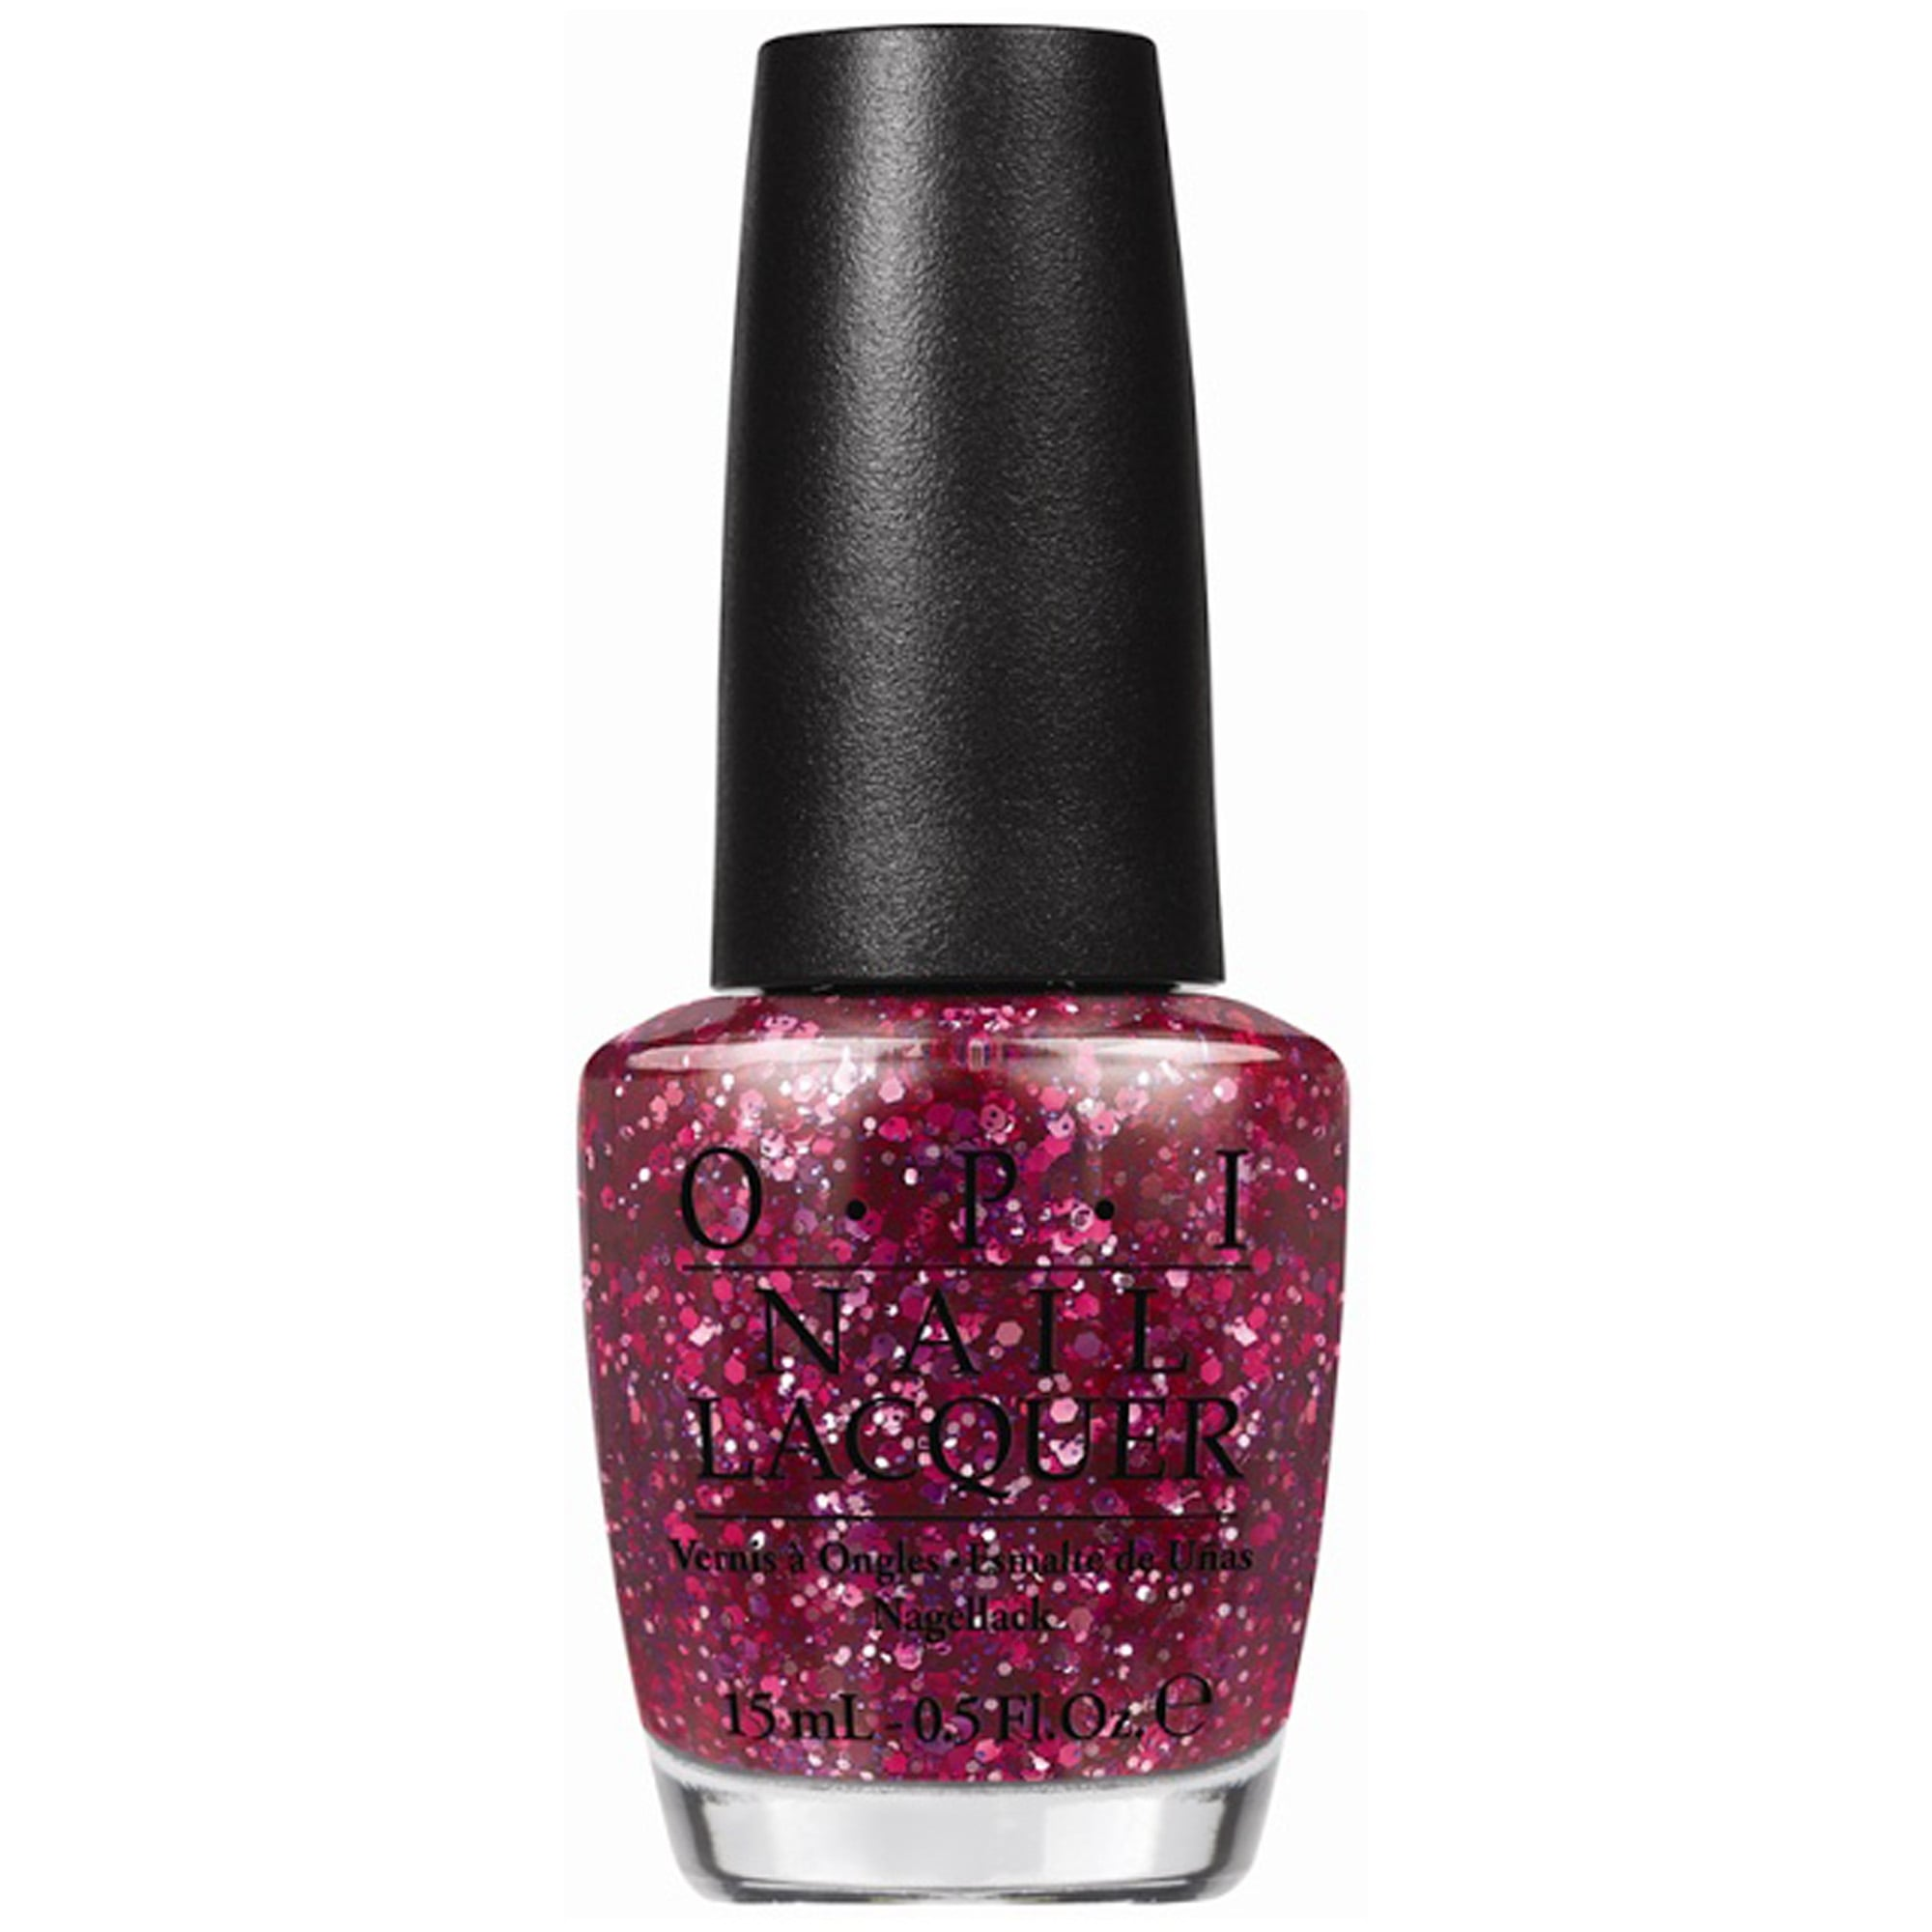 Green Glitter Nail Polish Uk: OPI Spotlight On Glitter Nail Polish Collection Blush Hour